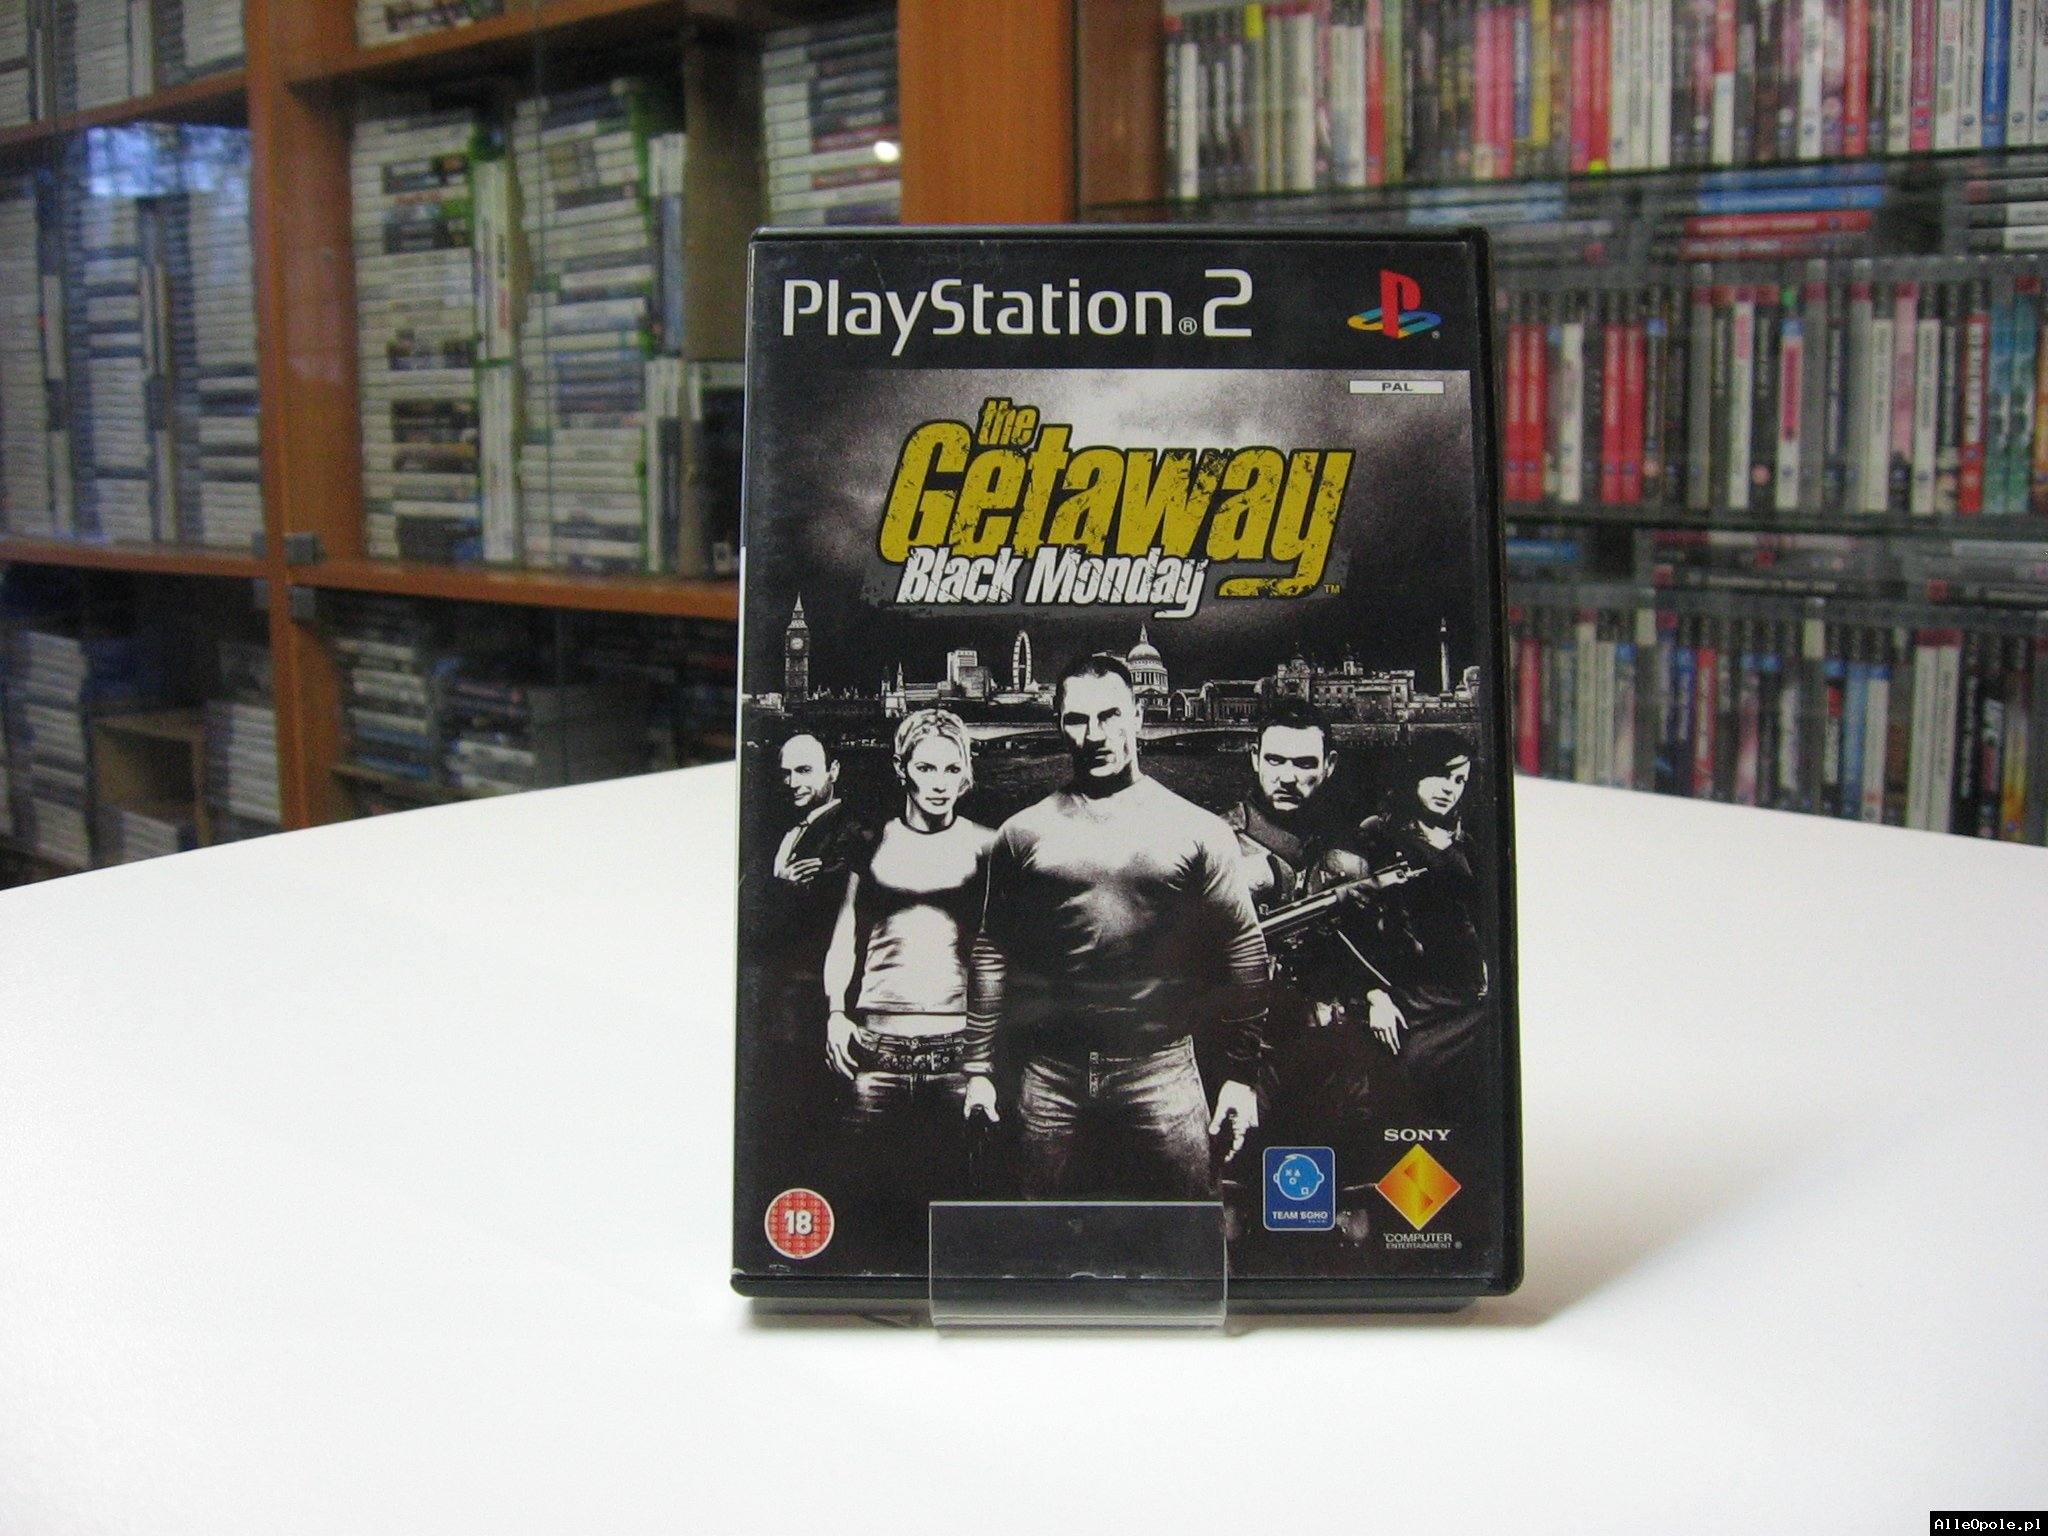 The Getaway: Black Monday - GRA Ps2 - Opole 0606